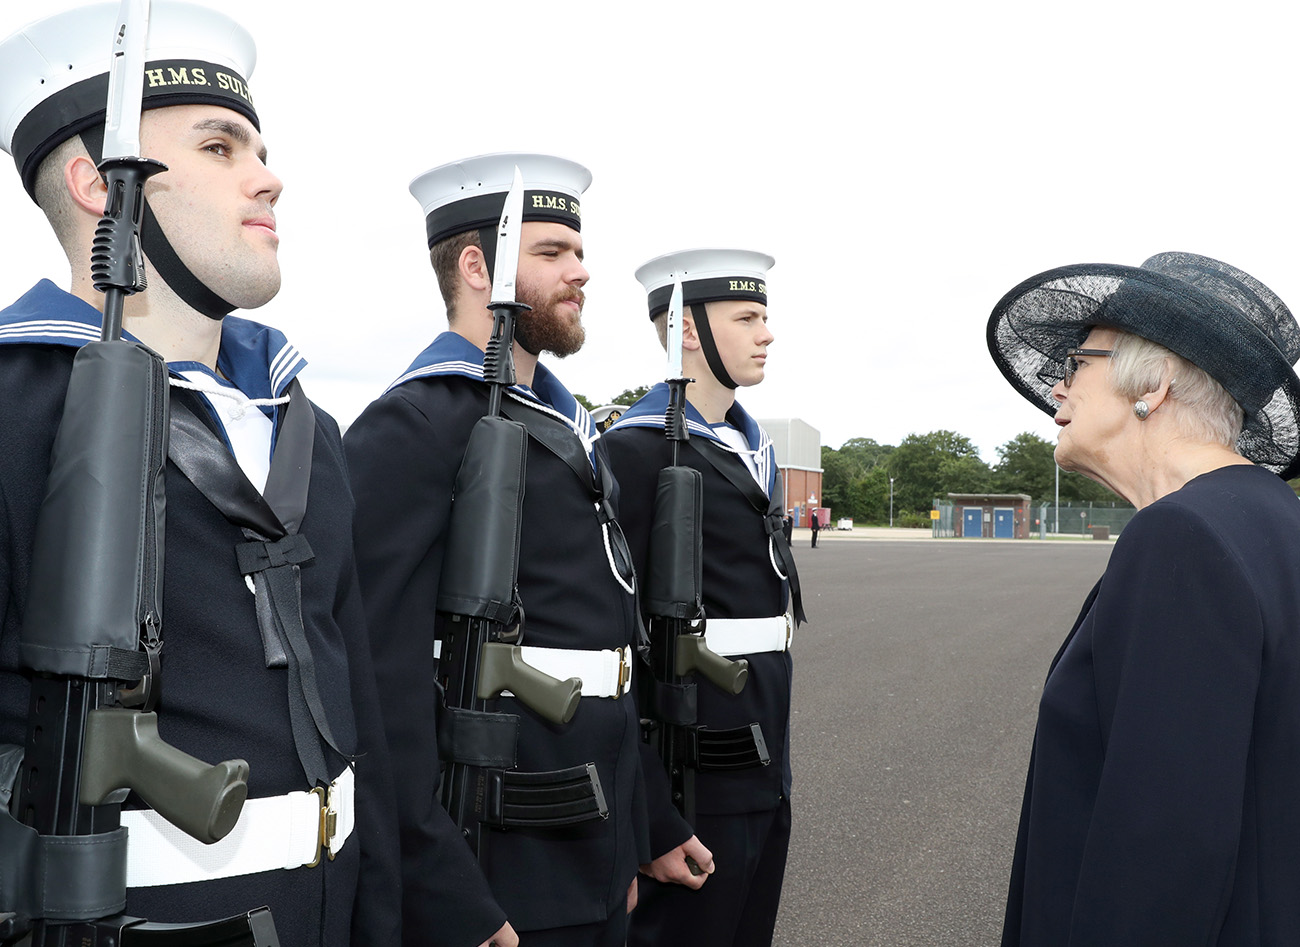 WRNS enjoy Ceremonial Divisions at HMS Sultan